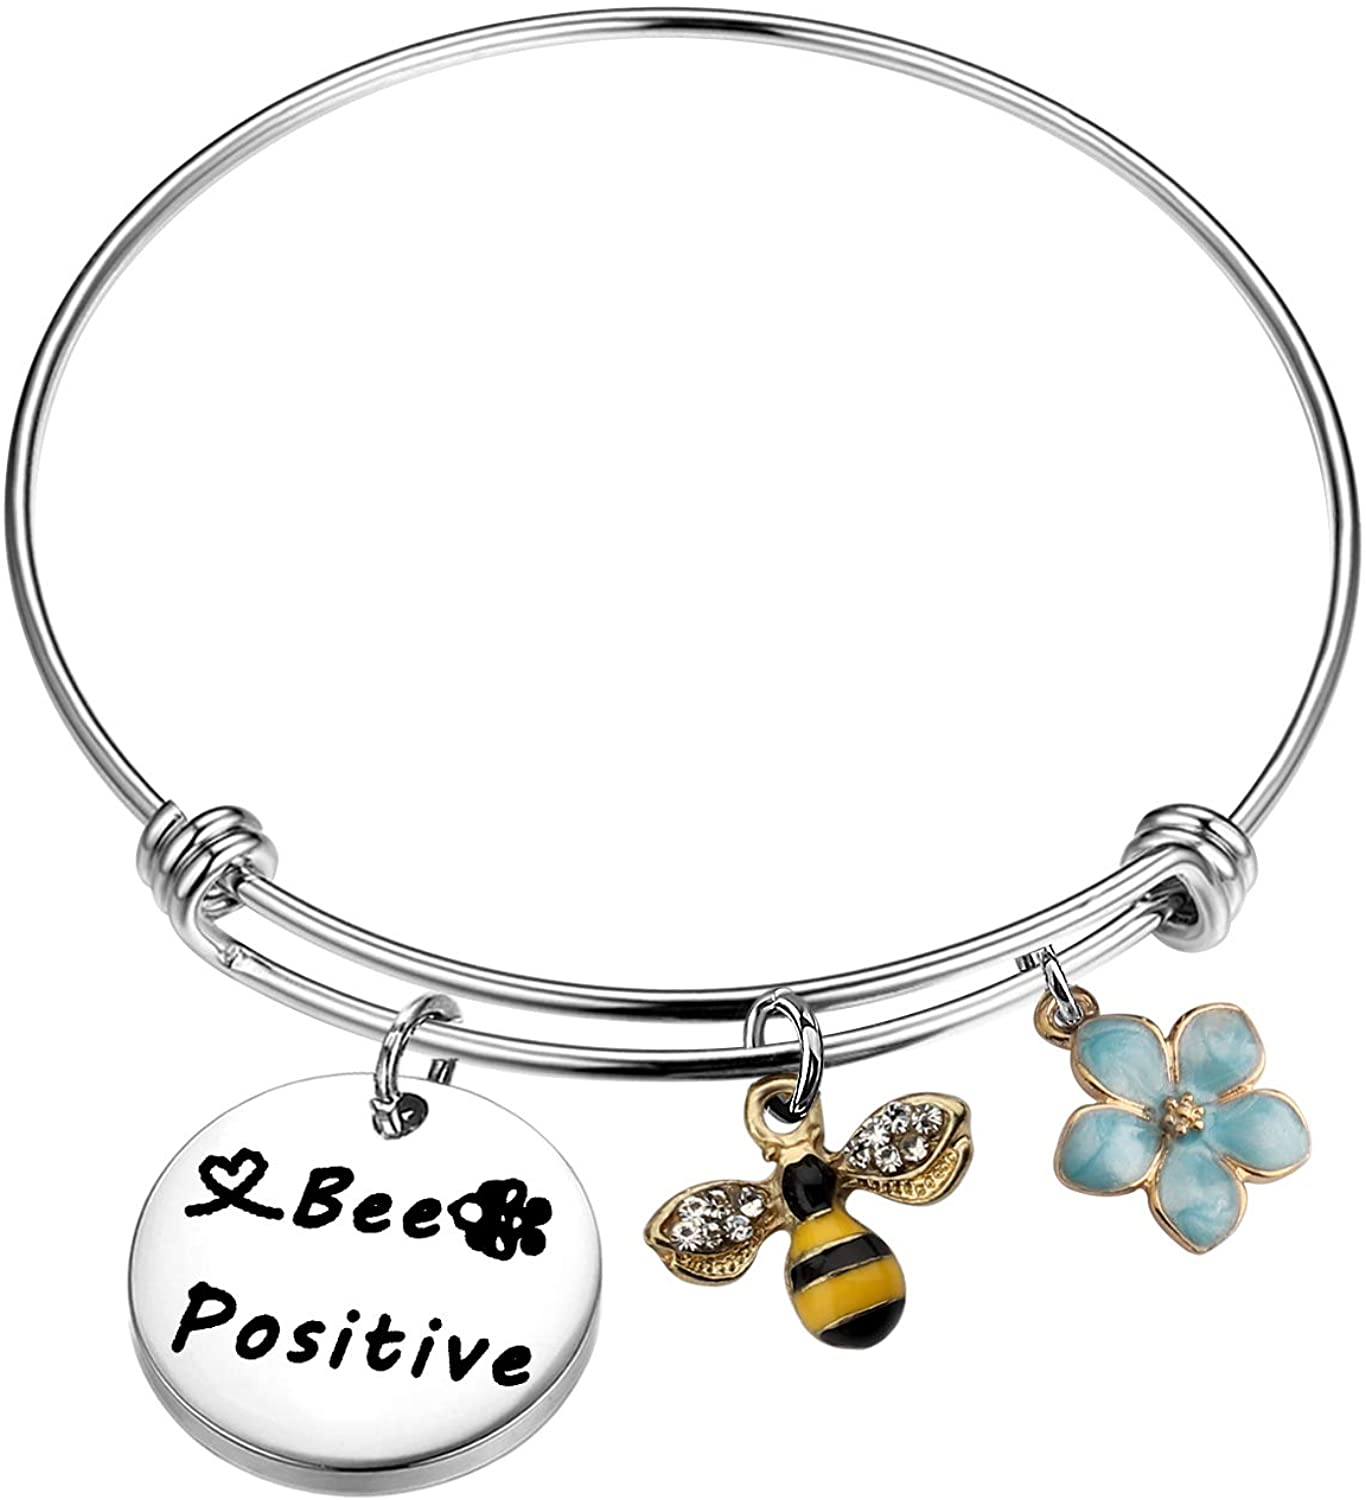 MYOSPARK Bee Positive Tiny Bee and Flower Charms Expandable Wire Bangle Bracelet Inspirational Jewelry Motivation Gift For Women Girls